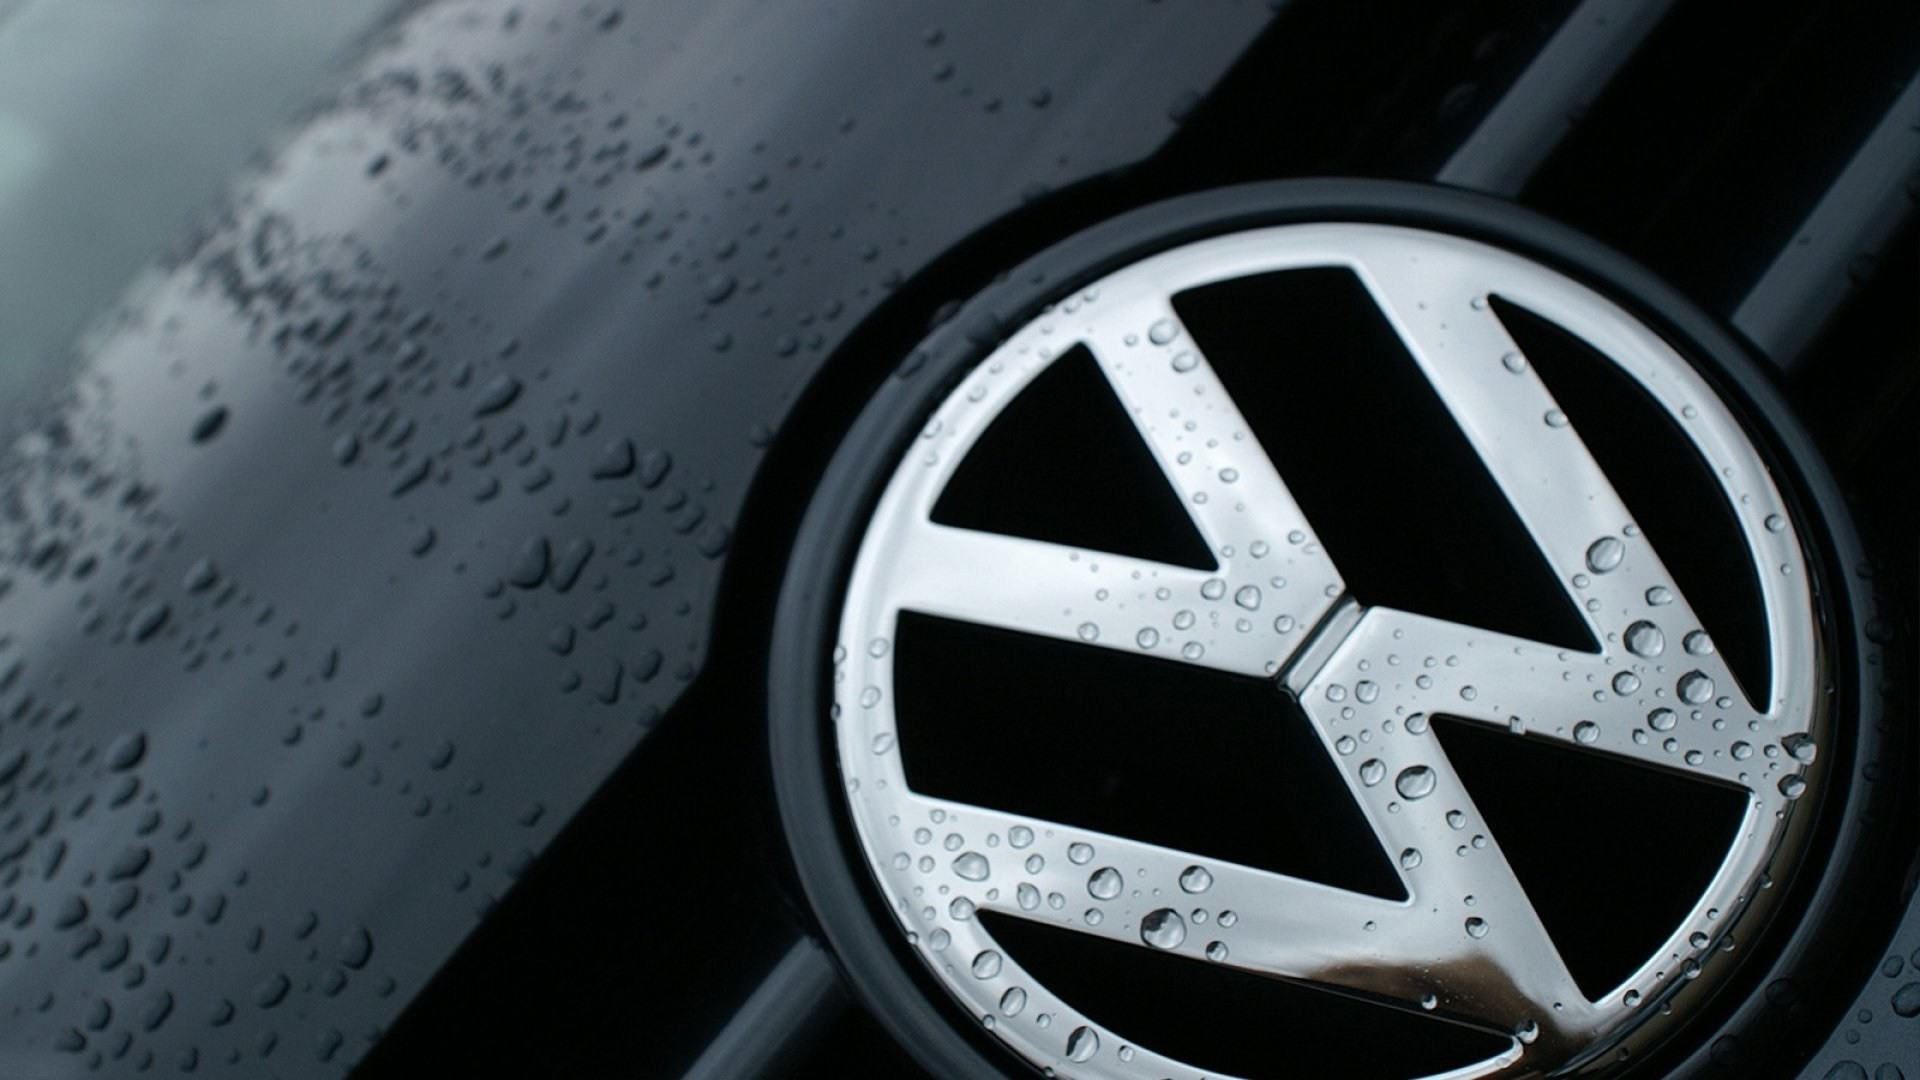 Res: 1920x1080, Volkswagen Wallpaper Black Ground Wallpaper Vw Logo Wallpaper